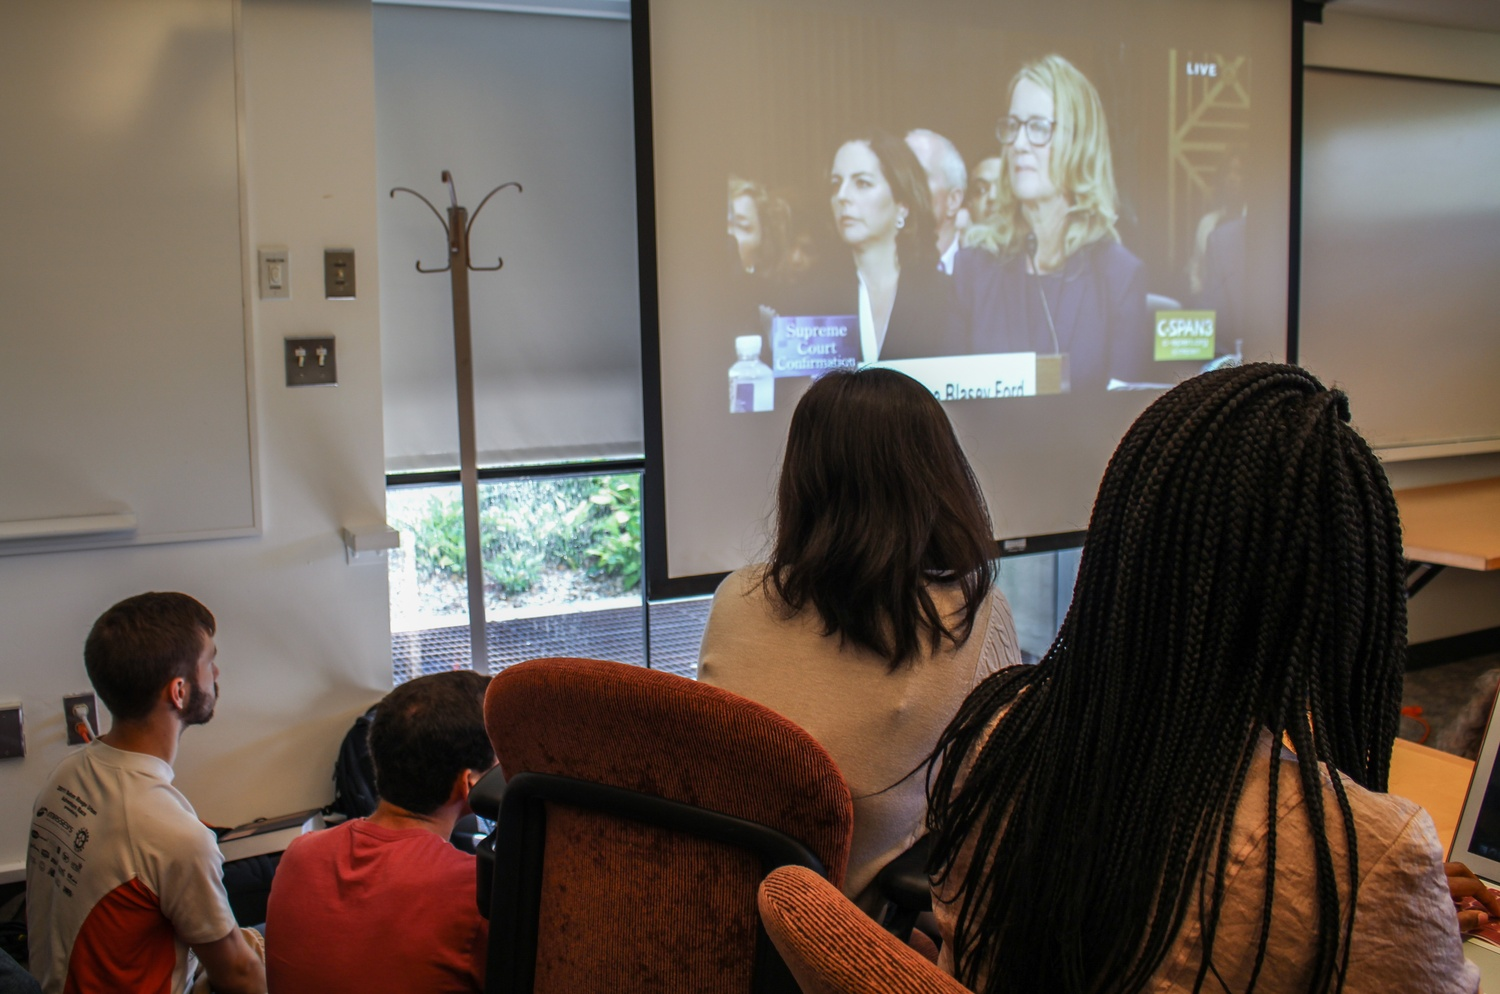 HLS students watch Christine Blasey Ford testify in front of the Senate Judiciary Committee regarding her sexual assault claims against Kavanaugh.